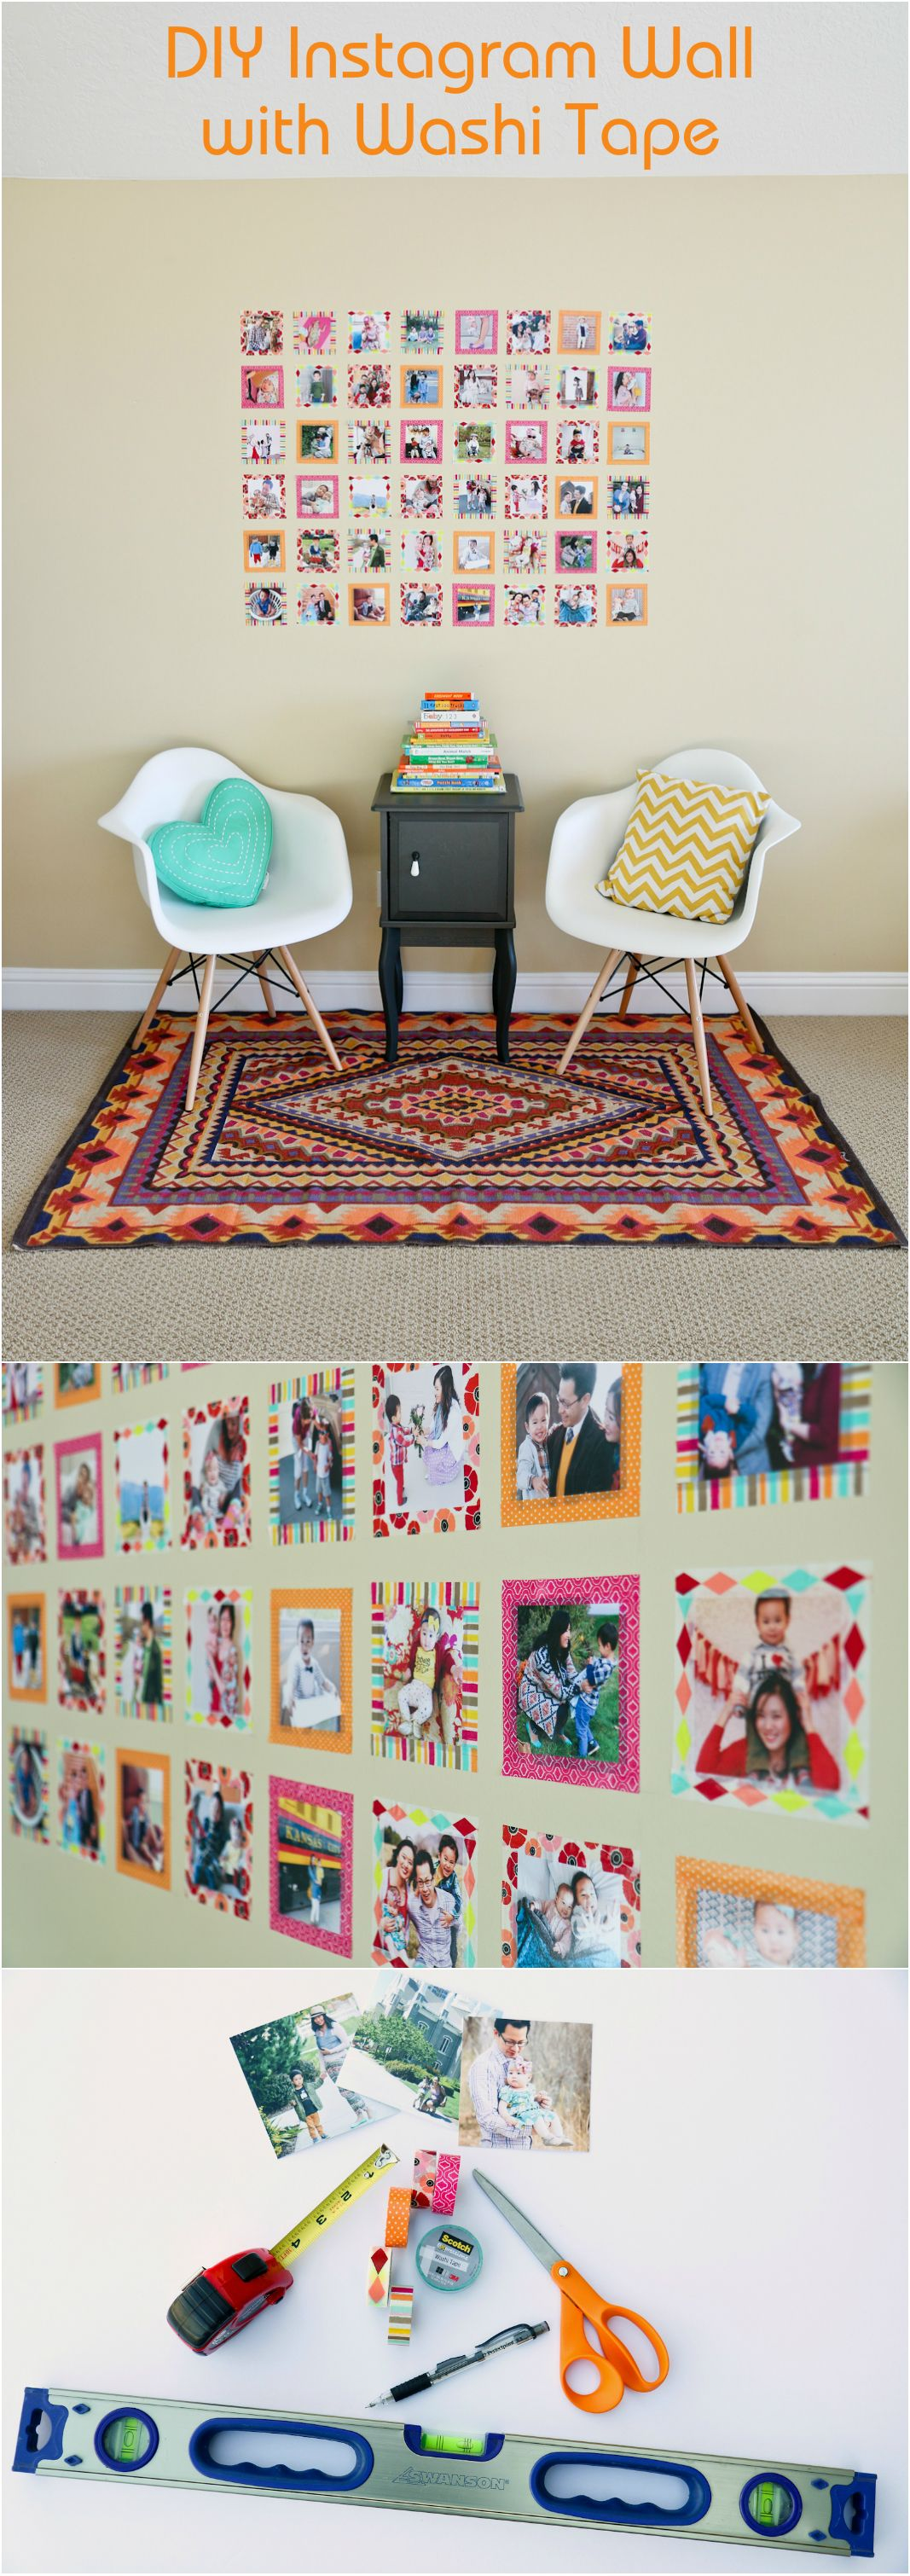 Instagram Wall Art With Washi Tape